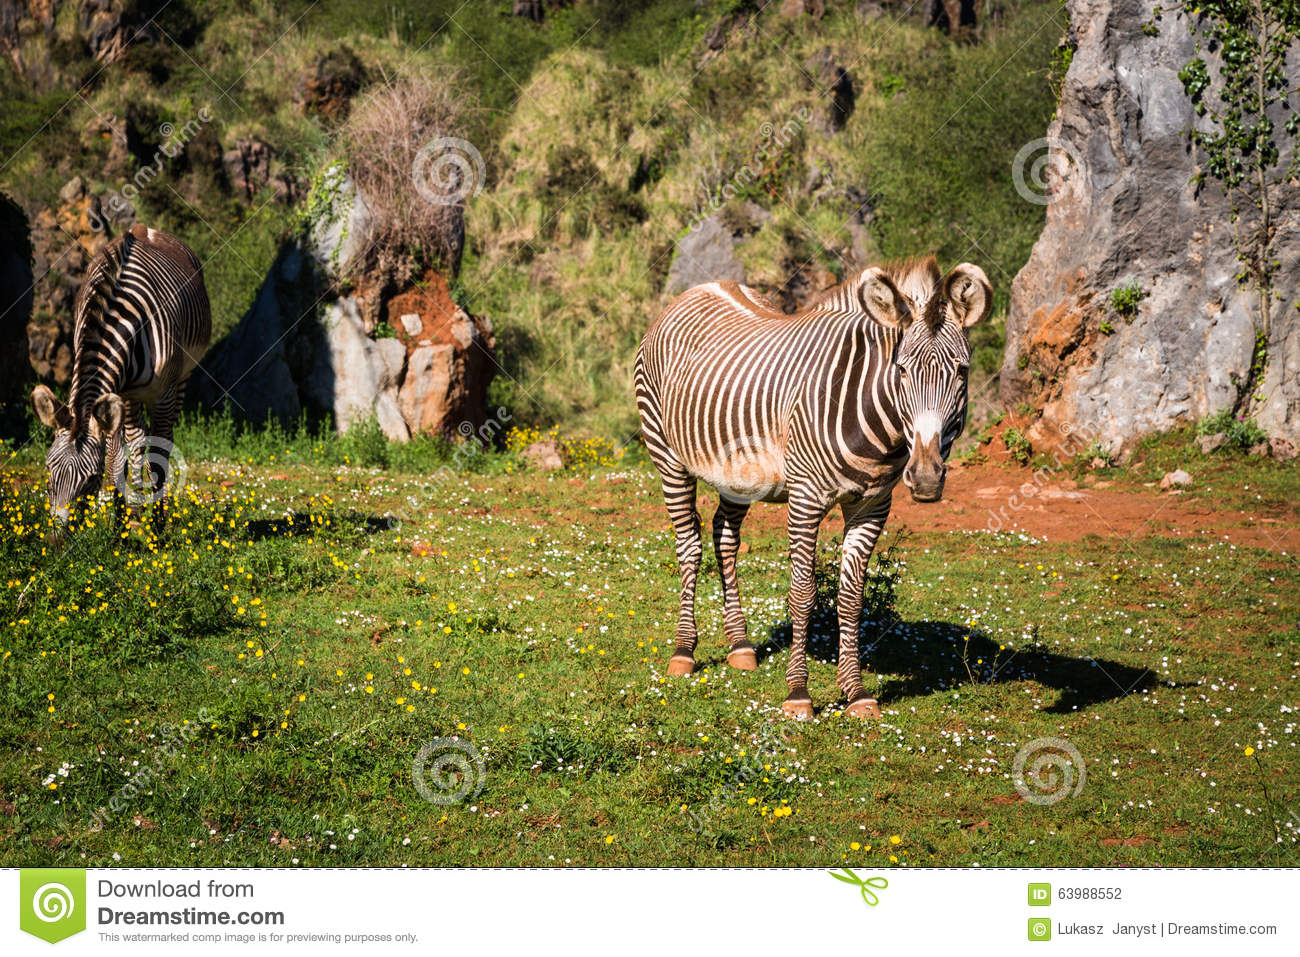 The Grevy s zebra (Equus grevyi), sometimes known as the imperial zebra, is the largest species of zebra. It is found in